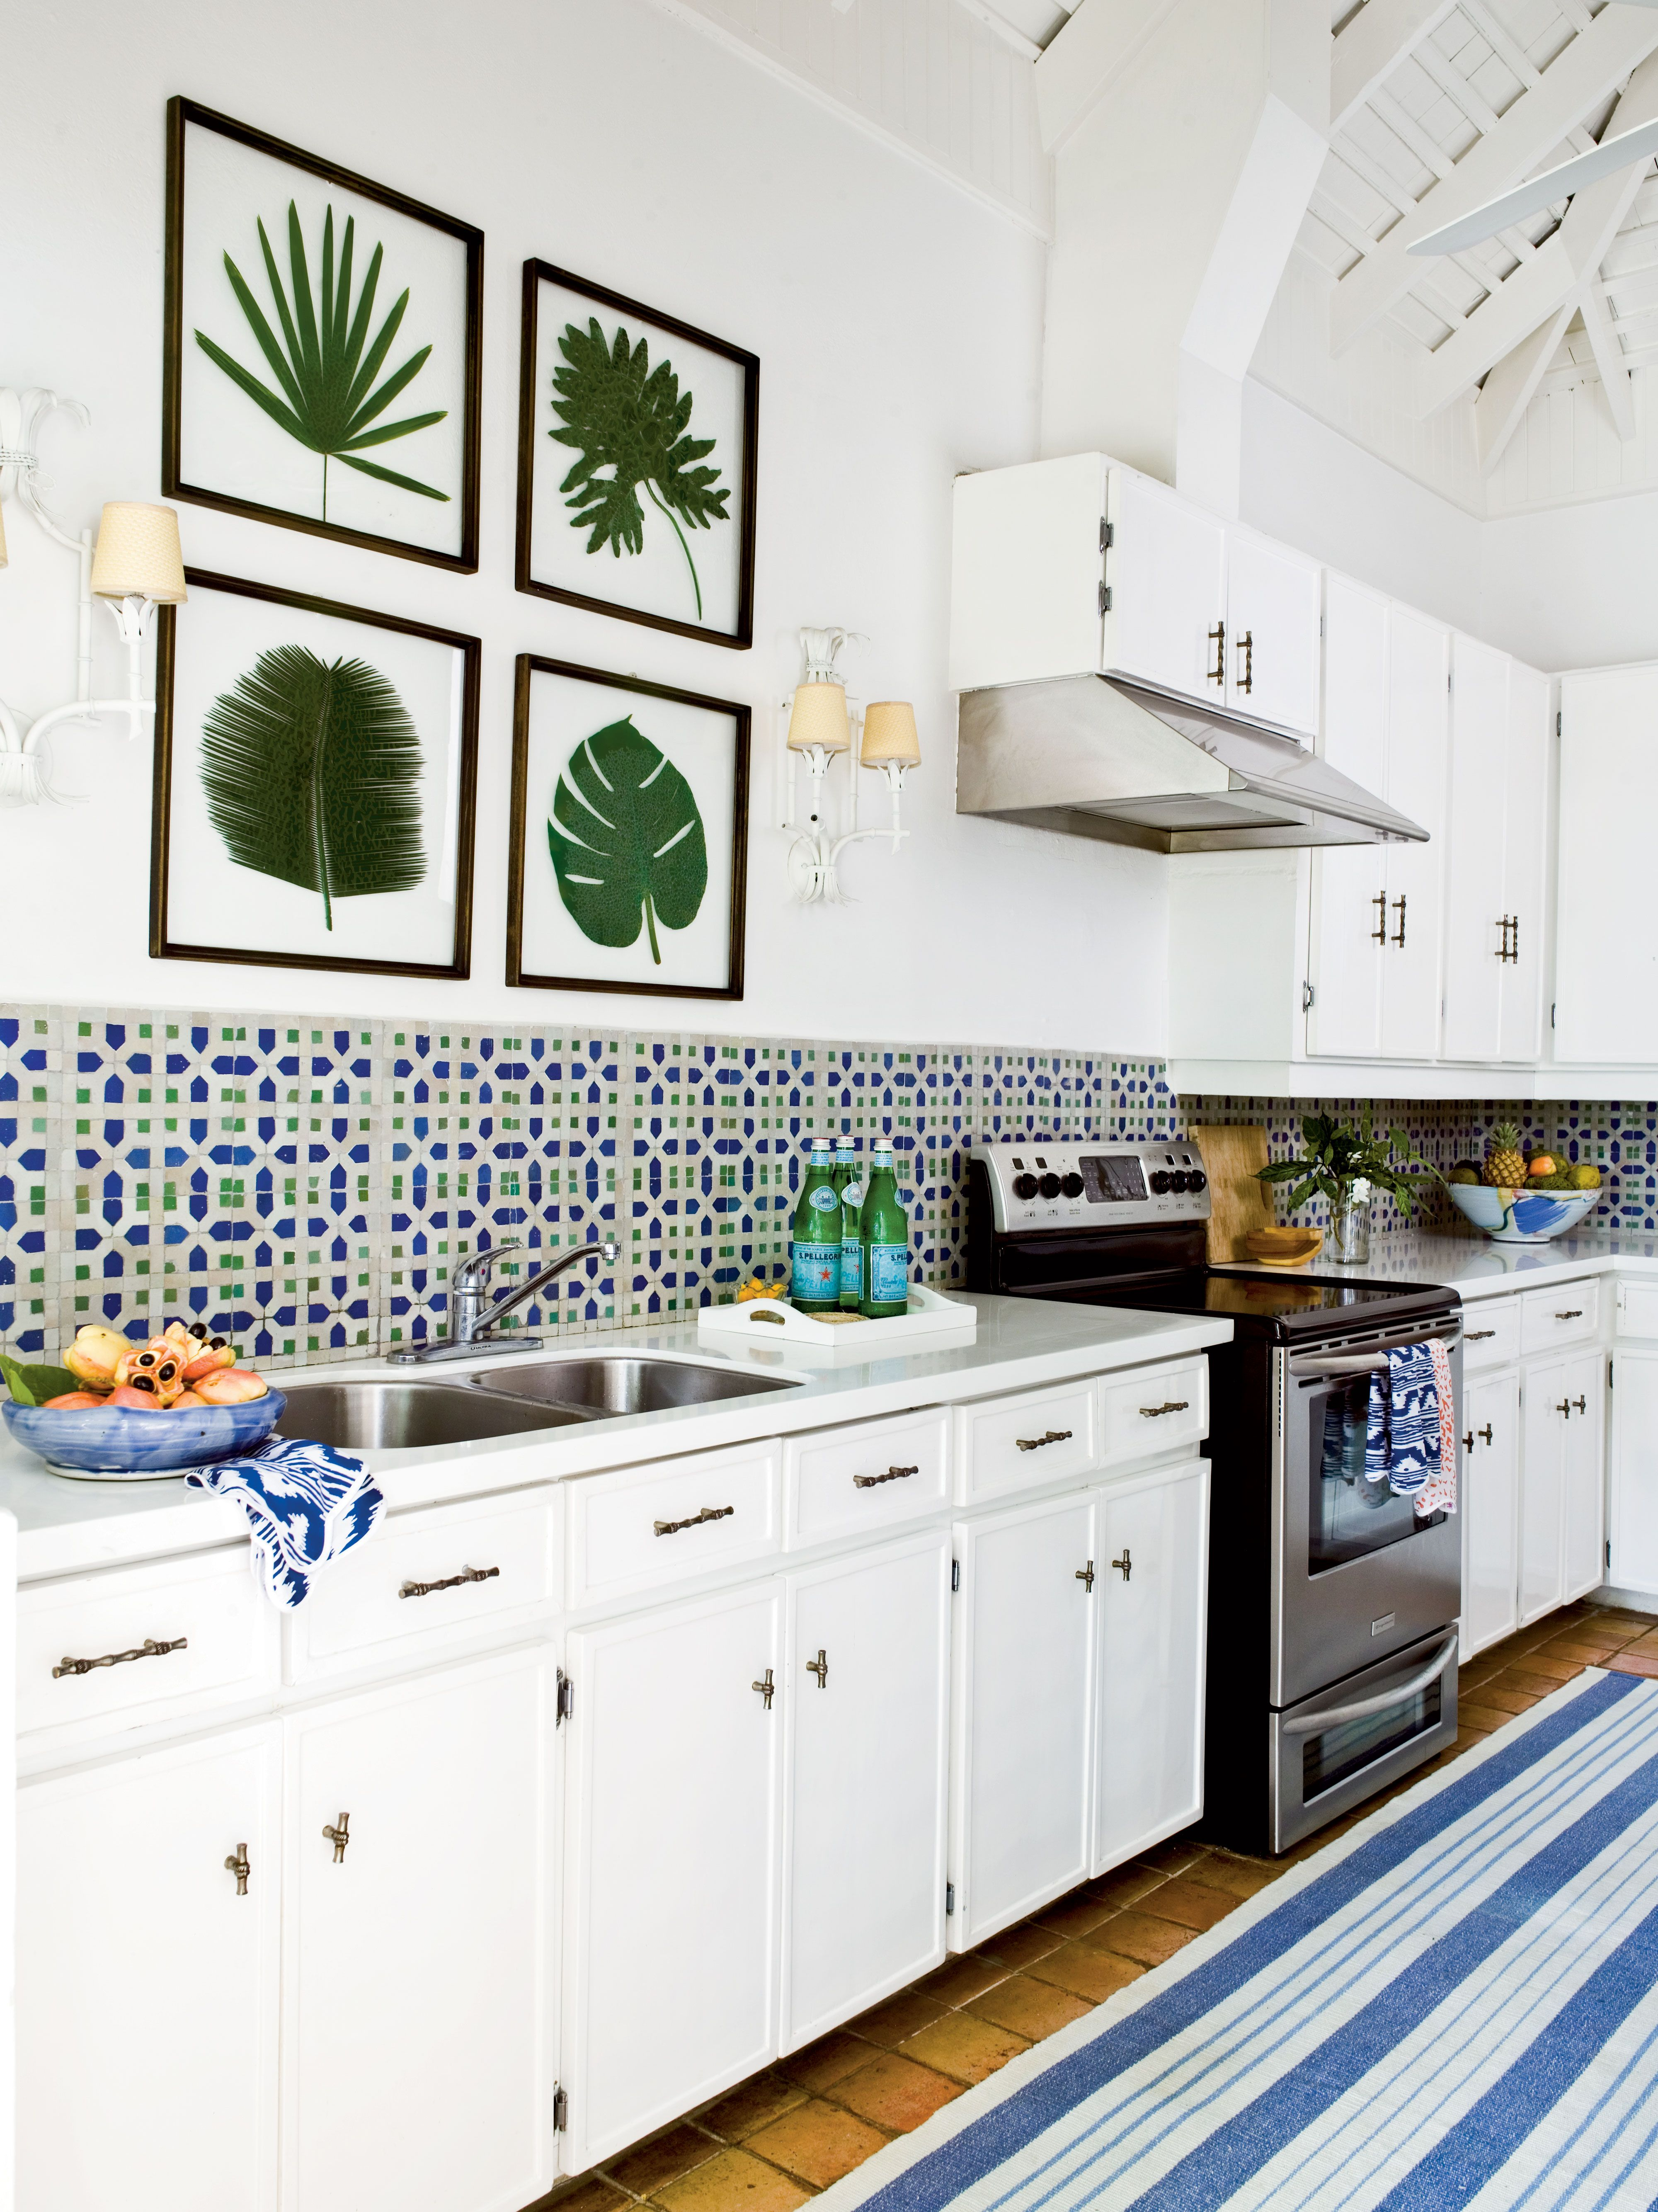 Mosaic tiles are a staple of island style. Bump up the Jamaican vibe ...